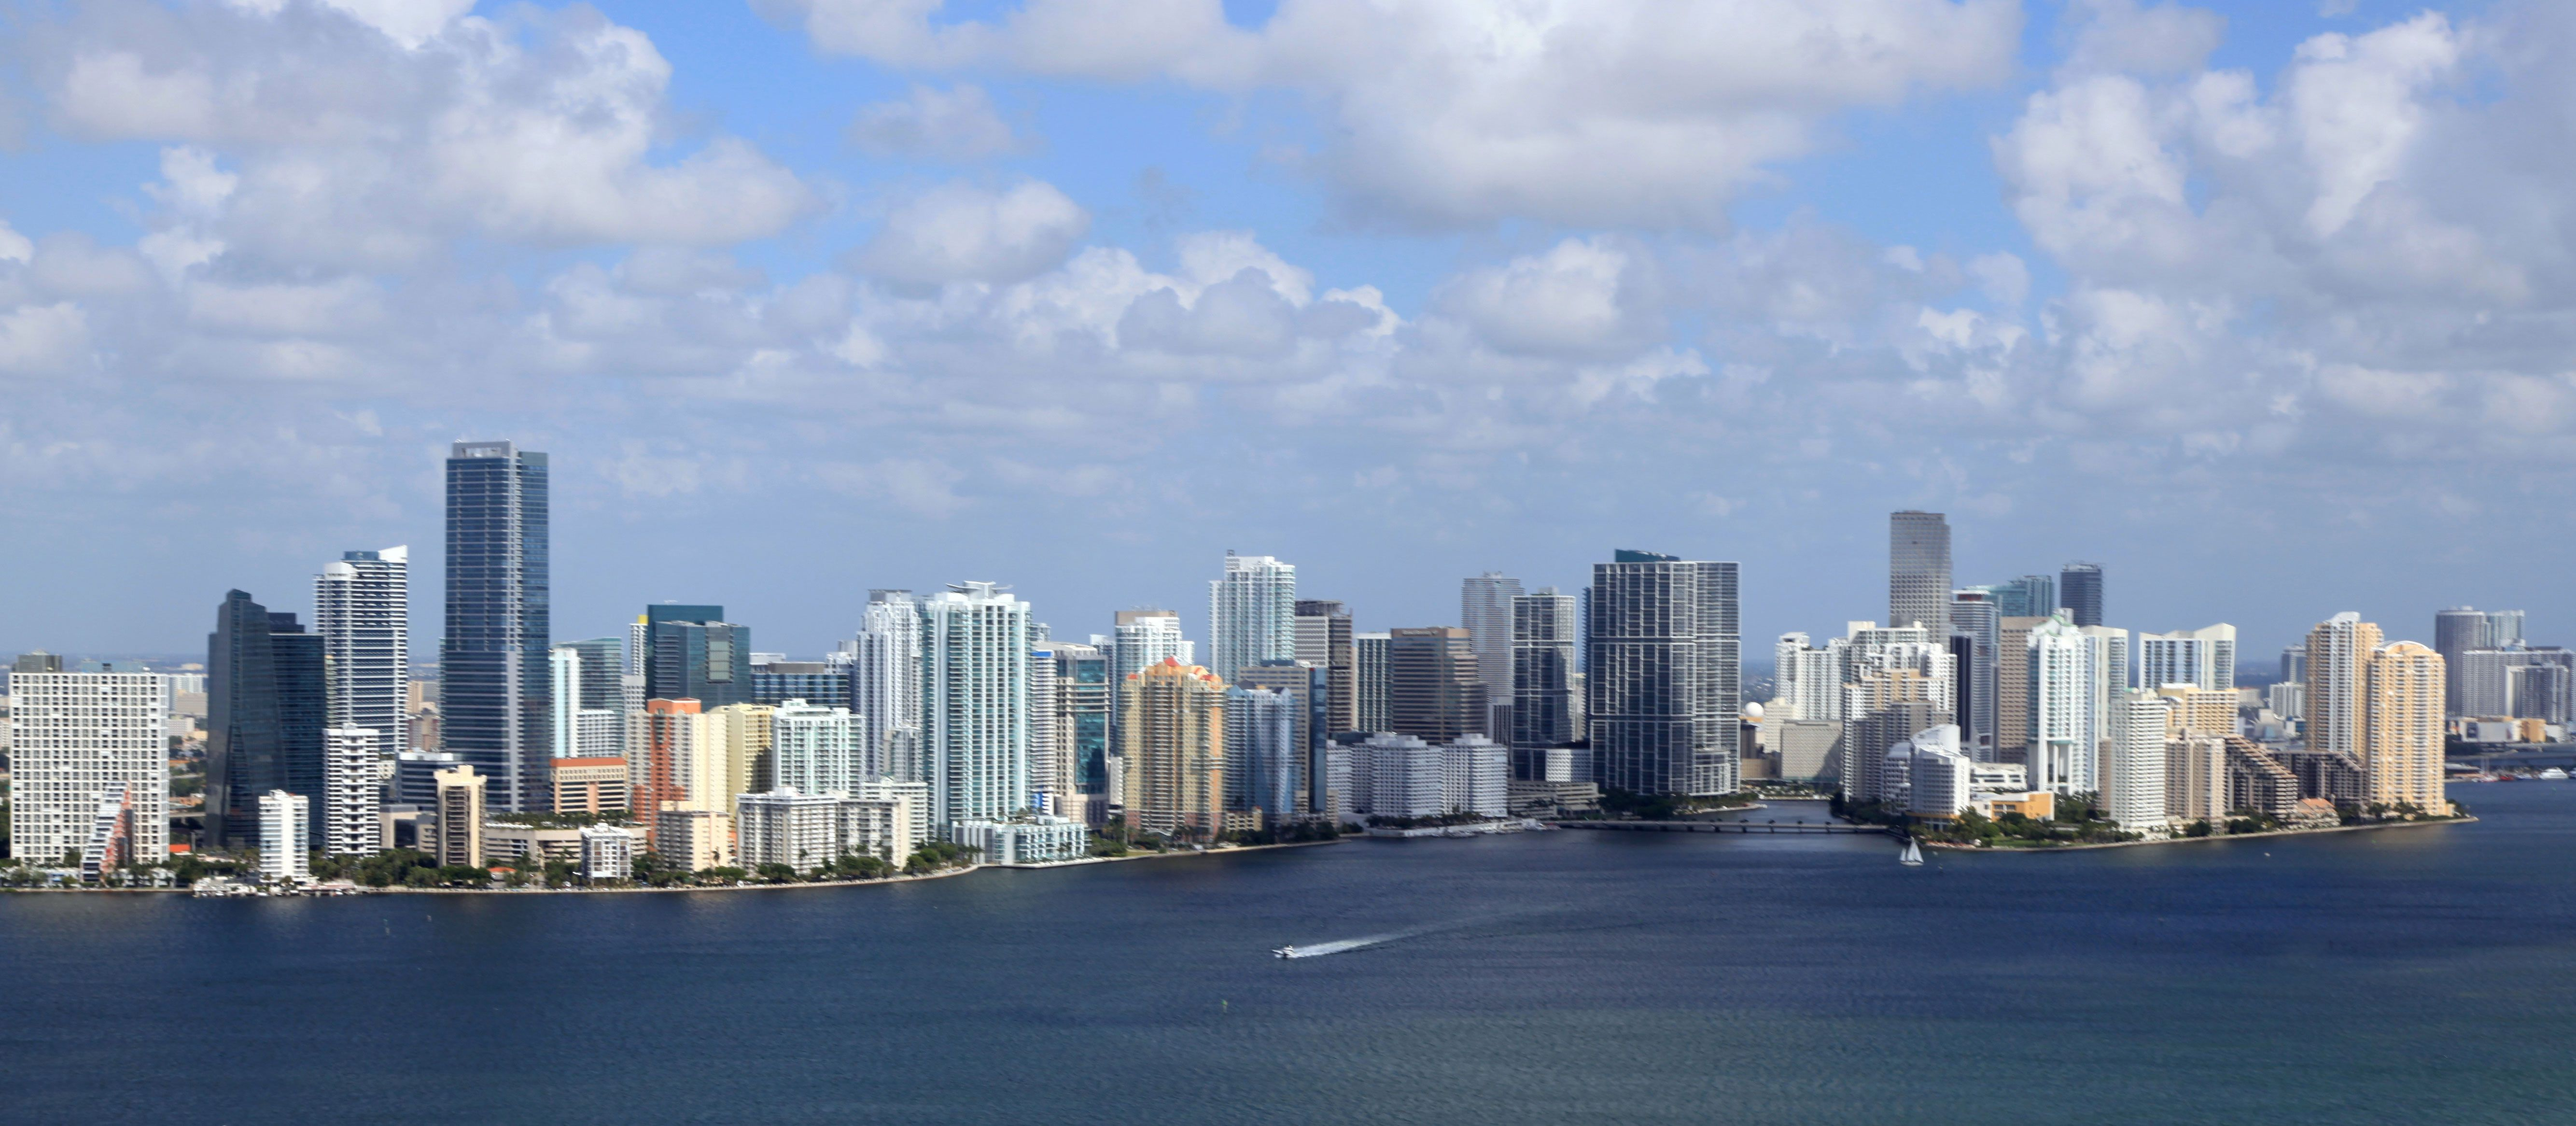 A gorgeous daytime skyline of Downtown Miami.You can never get sick of the #view!